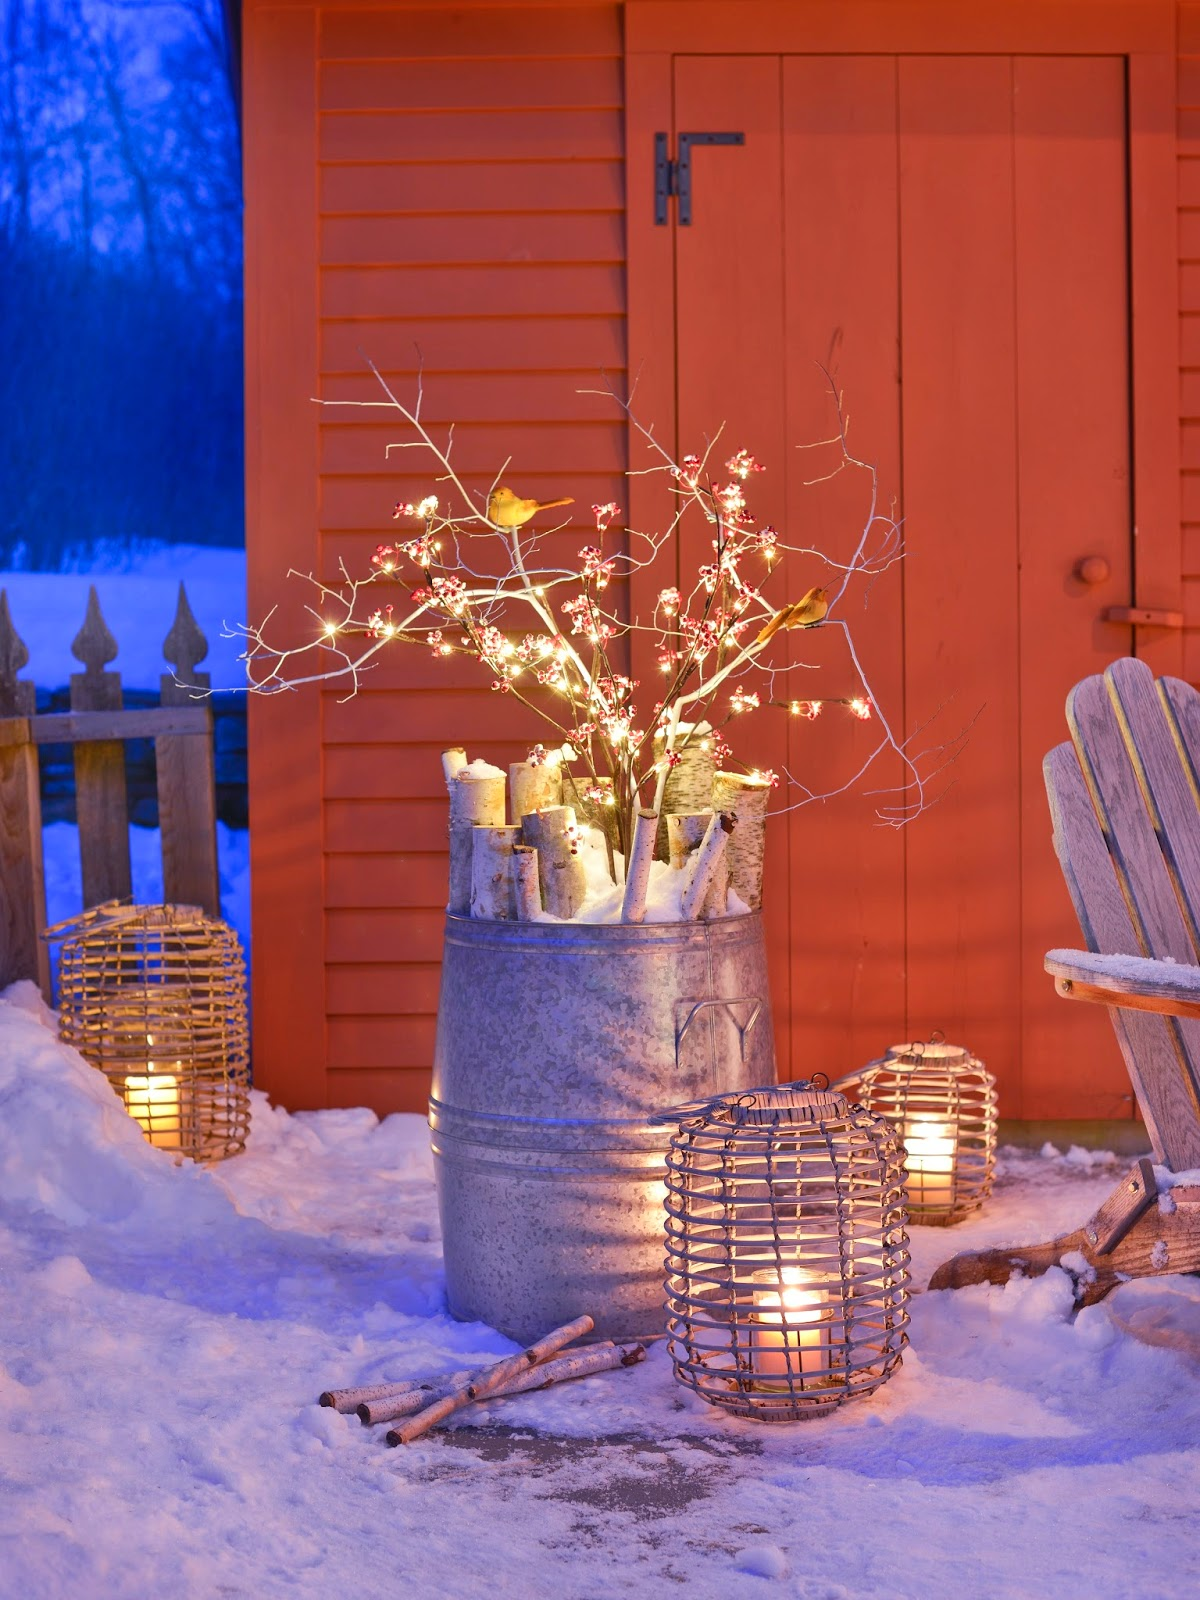 karin lidbeck outdoor spaces winter lights snow